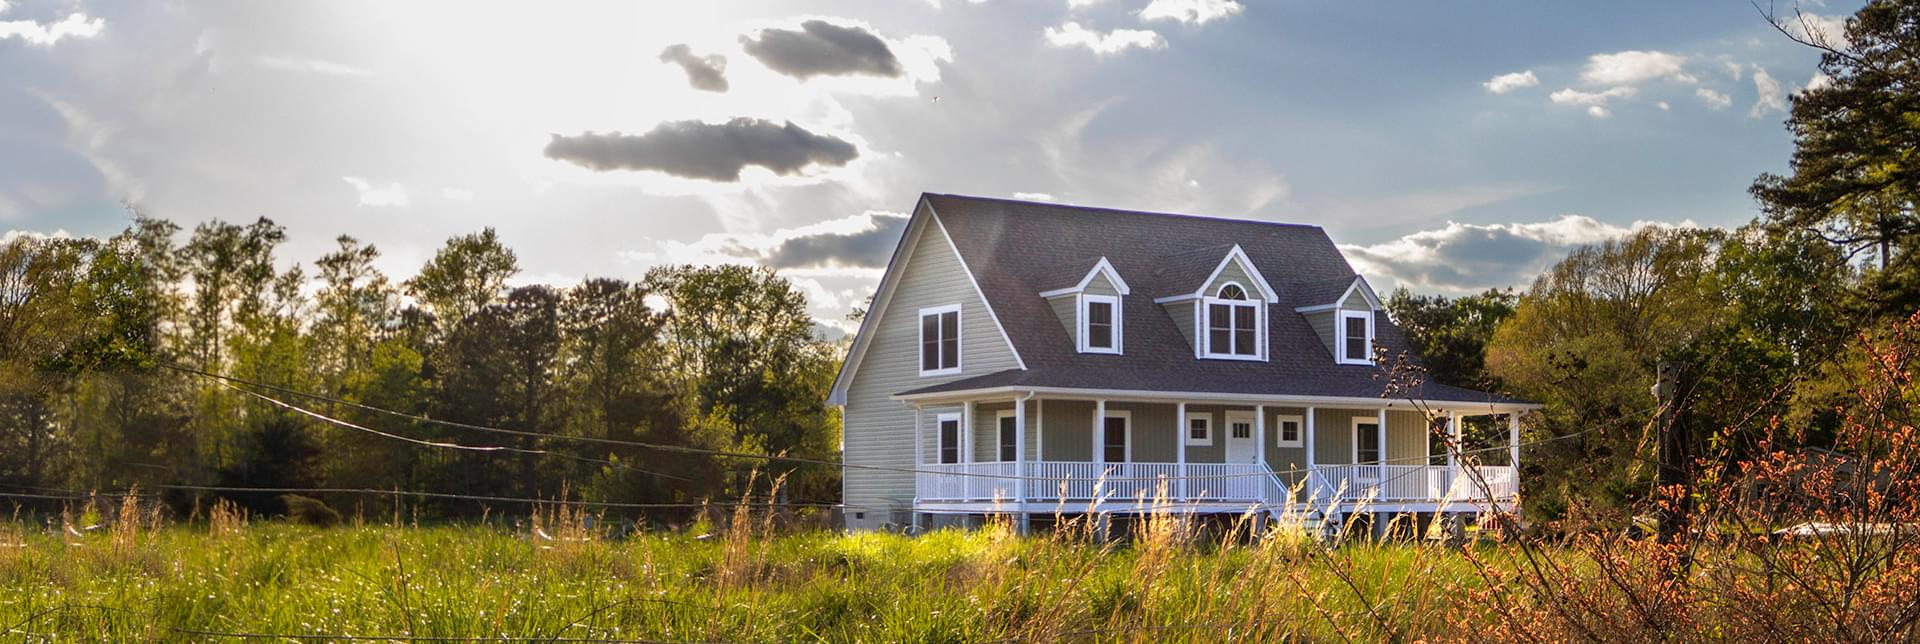 New Homes in Beaufort County NC